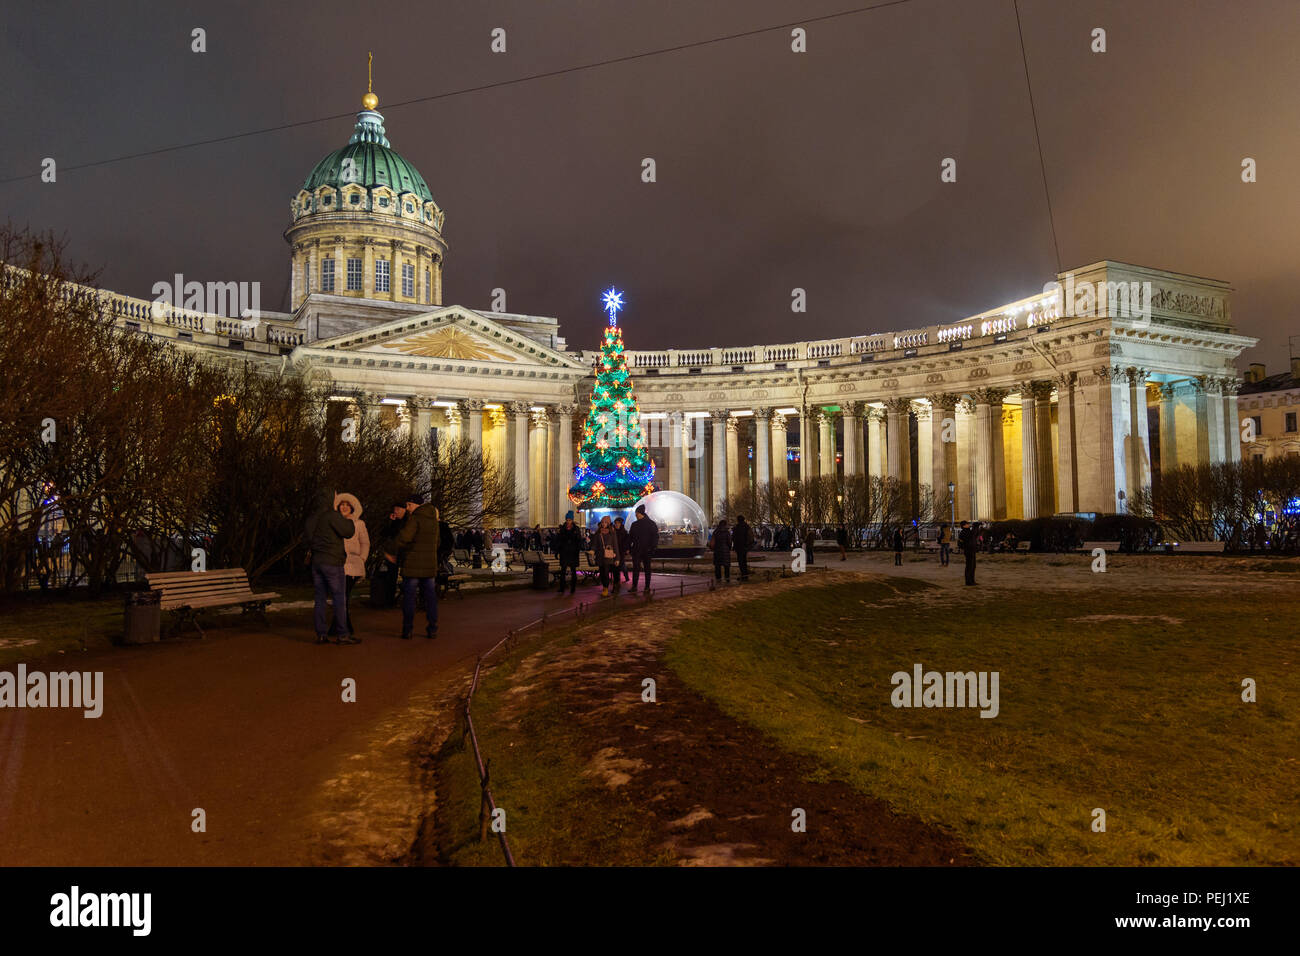 Saint Petersburg, Russia - January 3, 2018: View of Kazan Cathedral Sobor and Christmas Tree on Palace at night Stock Photo